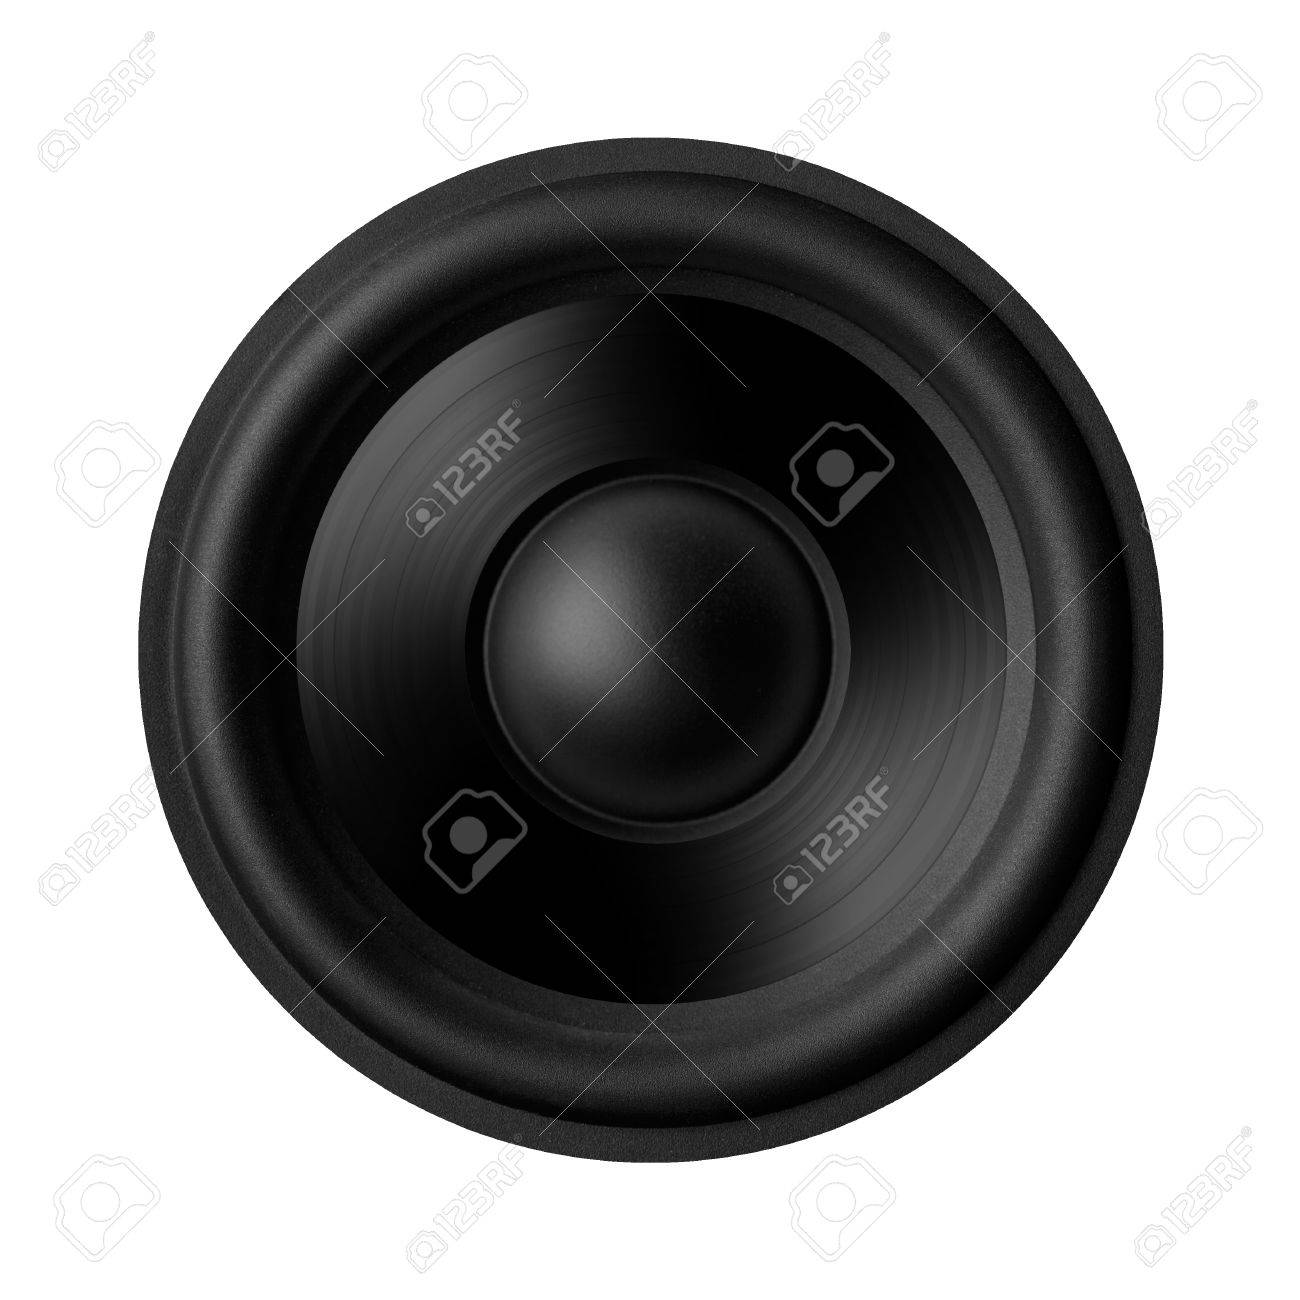 Black speaker with a metal membrane Stock Photo - 22497356